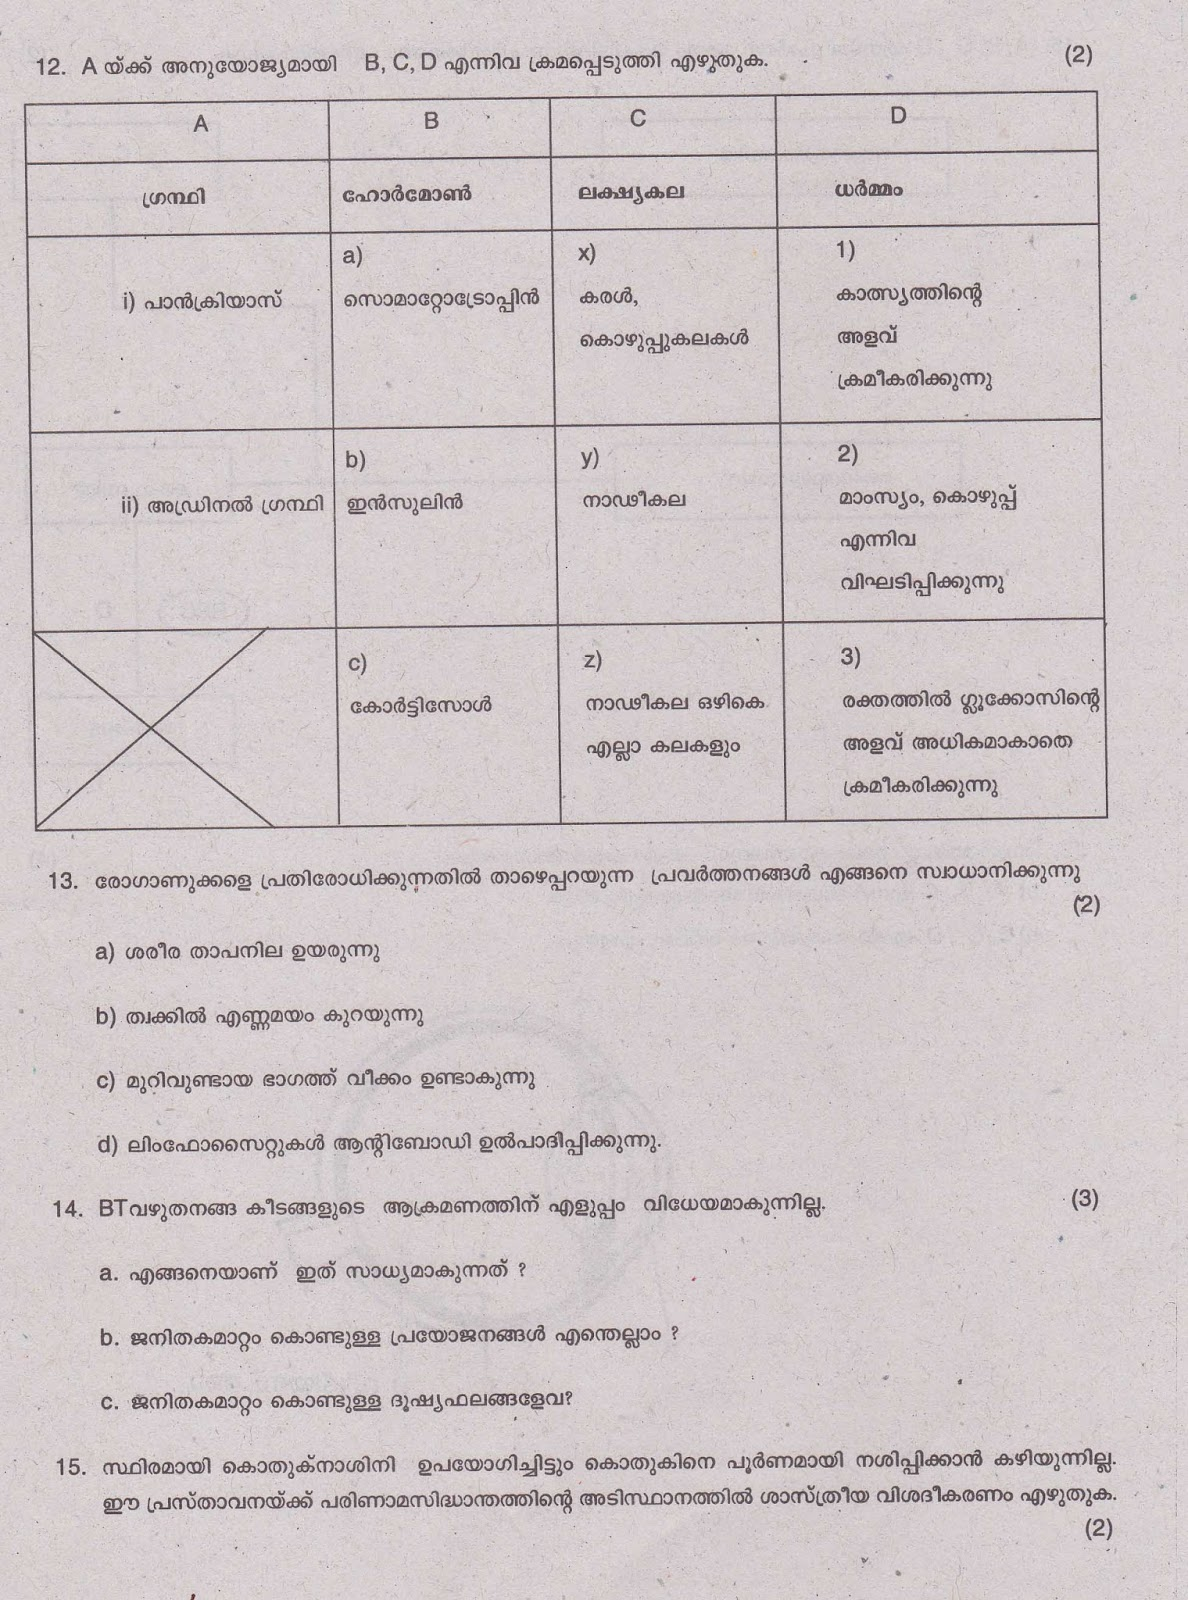 Sslc model papers essay coursework academic service ymassignmentqiyq sslc model papers essay tamilnadu state board sslc 10th english easy scoring study materials malvernweather Images